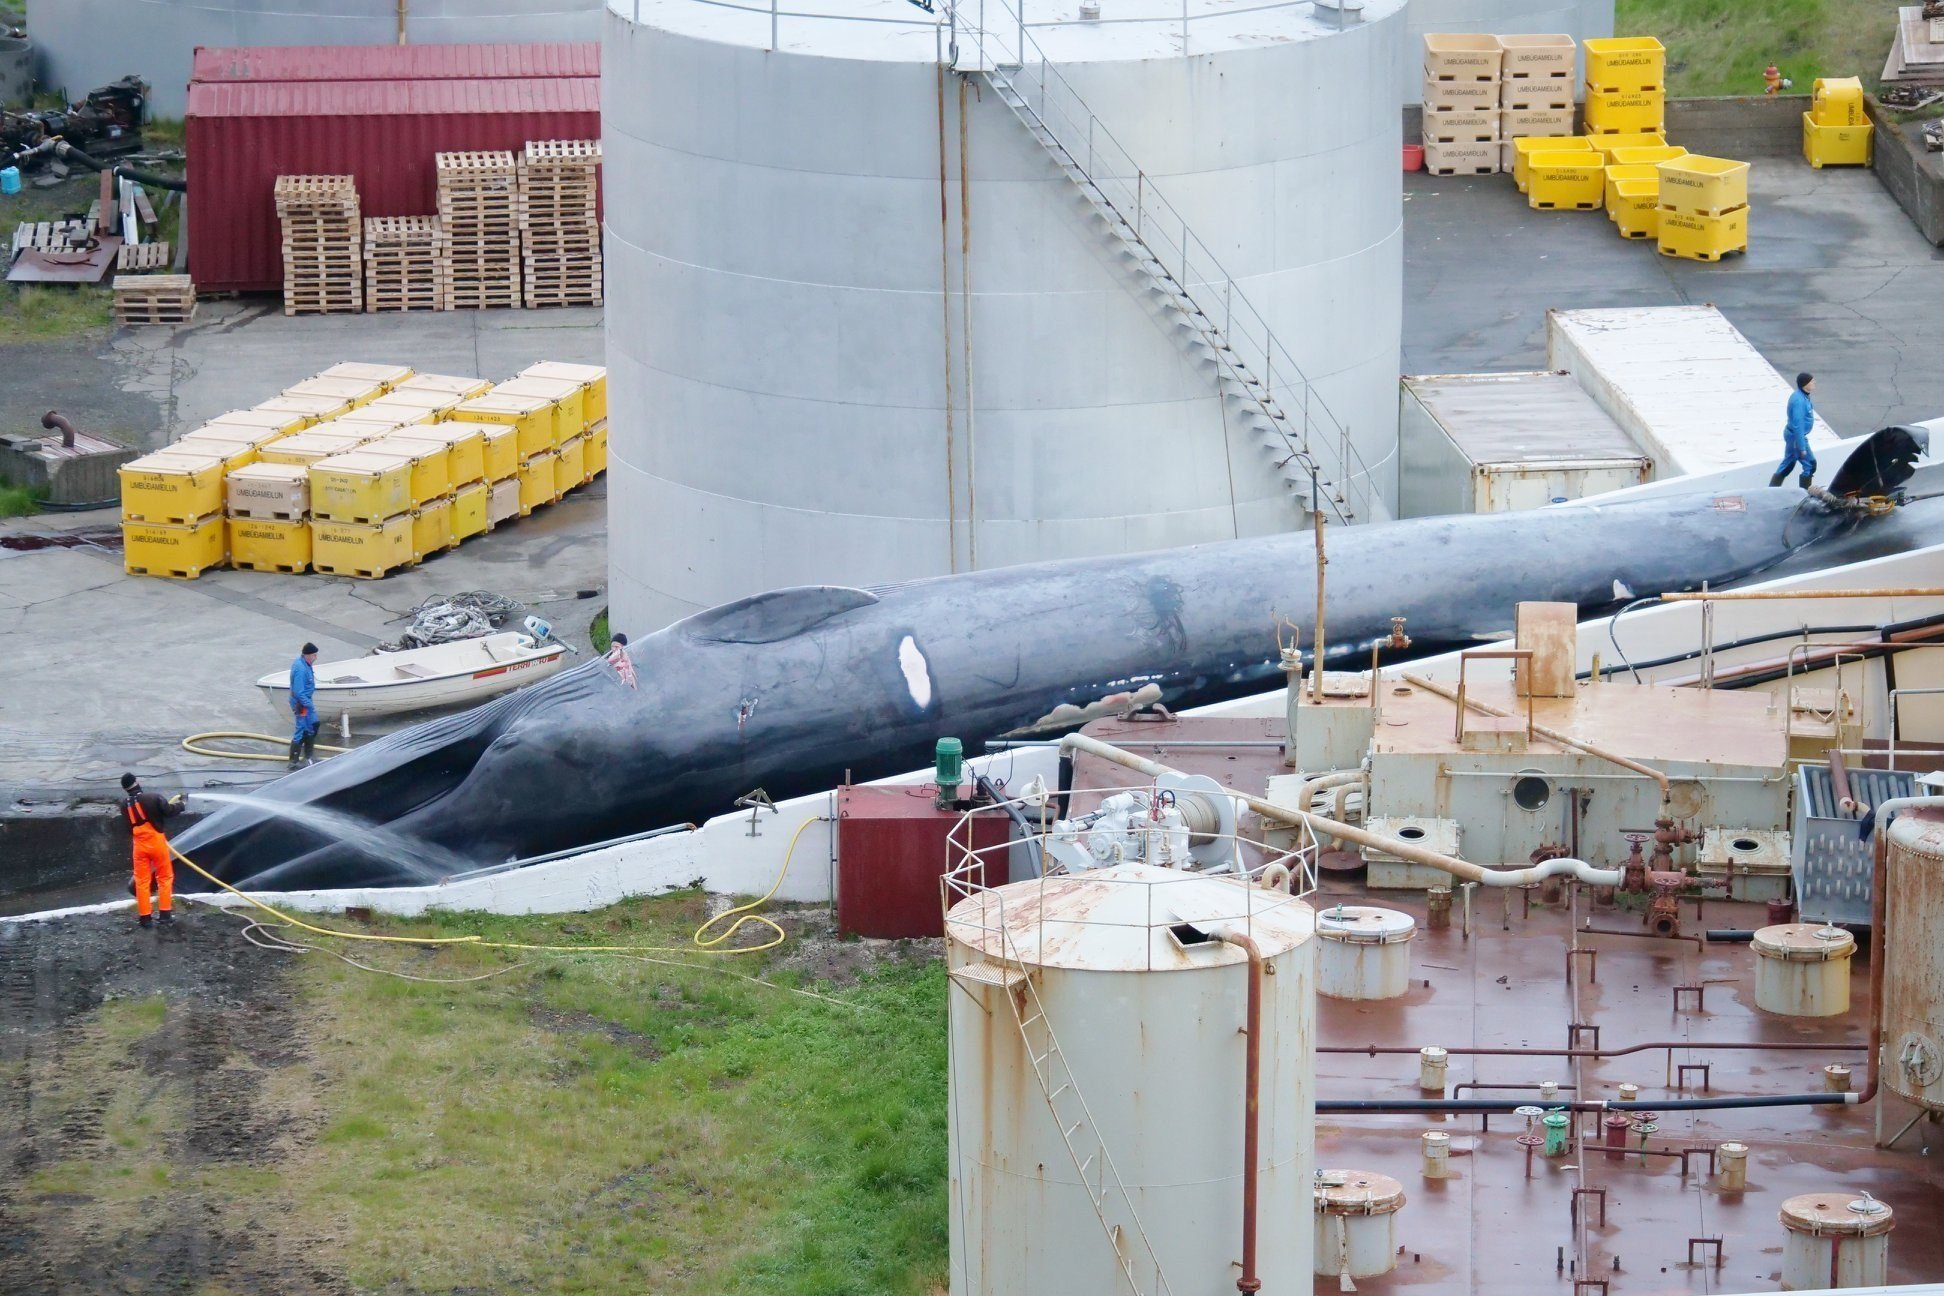 One of Iceland's richest men has hit back against claims his whaling company illegally killed a protected blue whale.